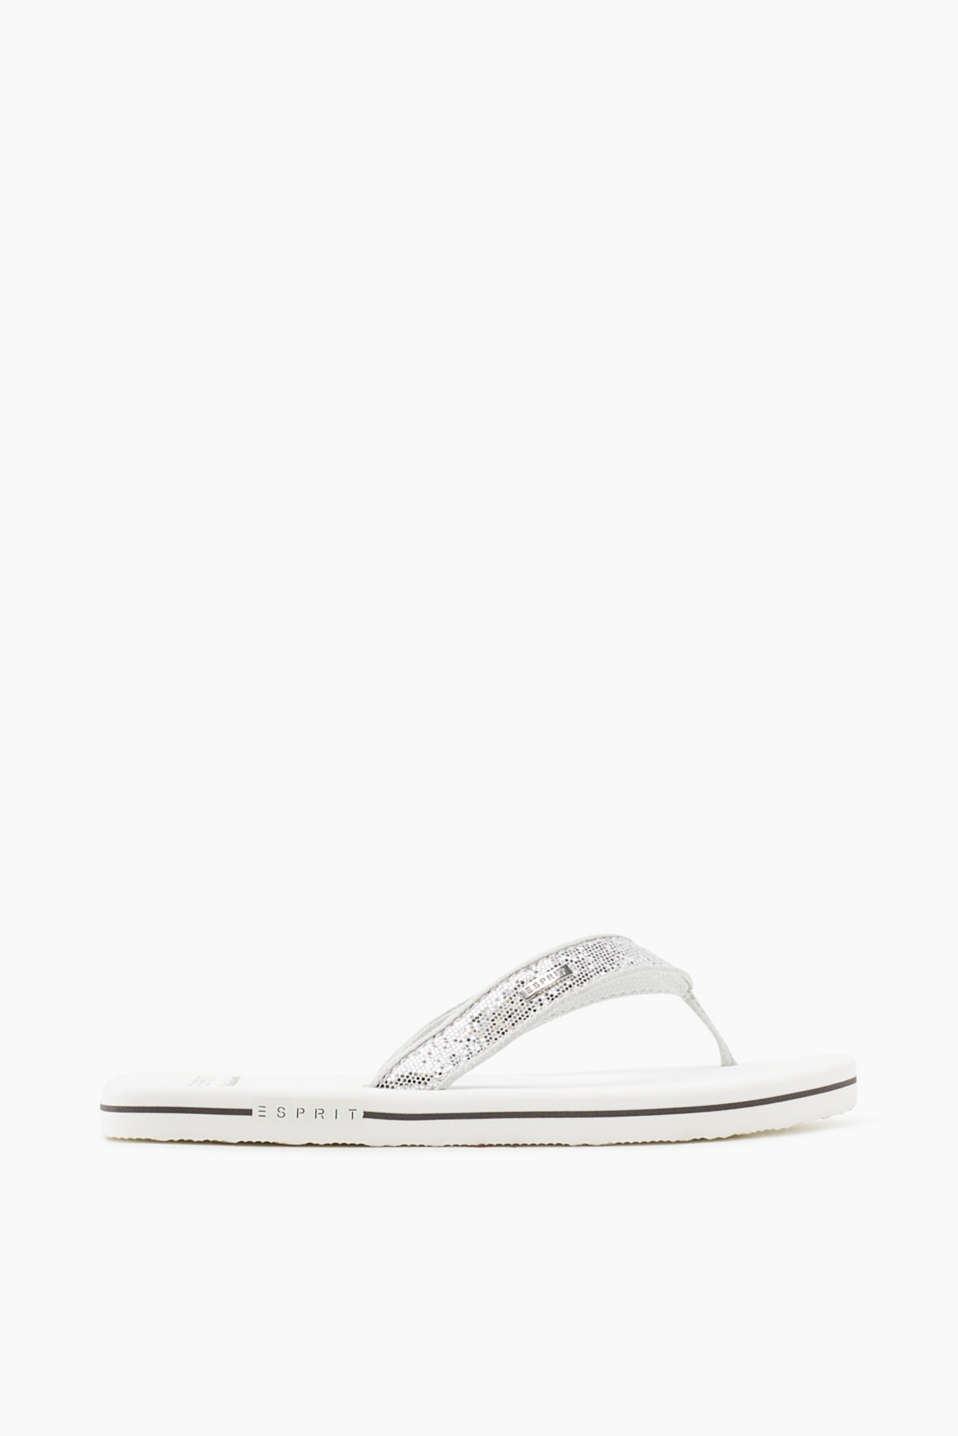 Esprit - Toe-post sandals with glittery straps